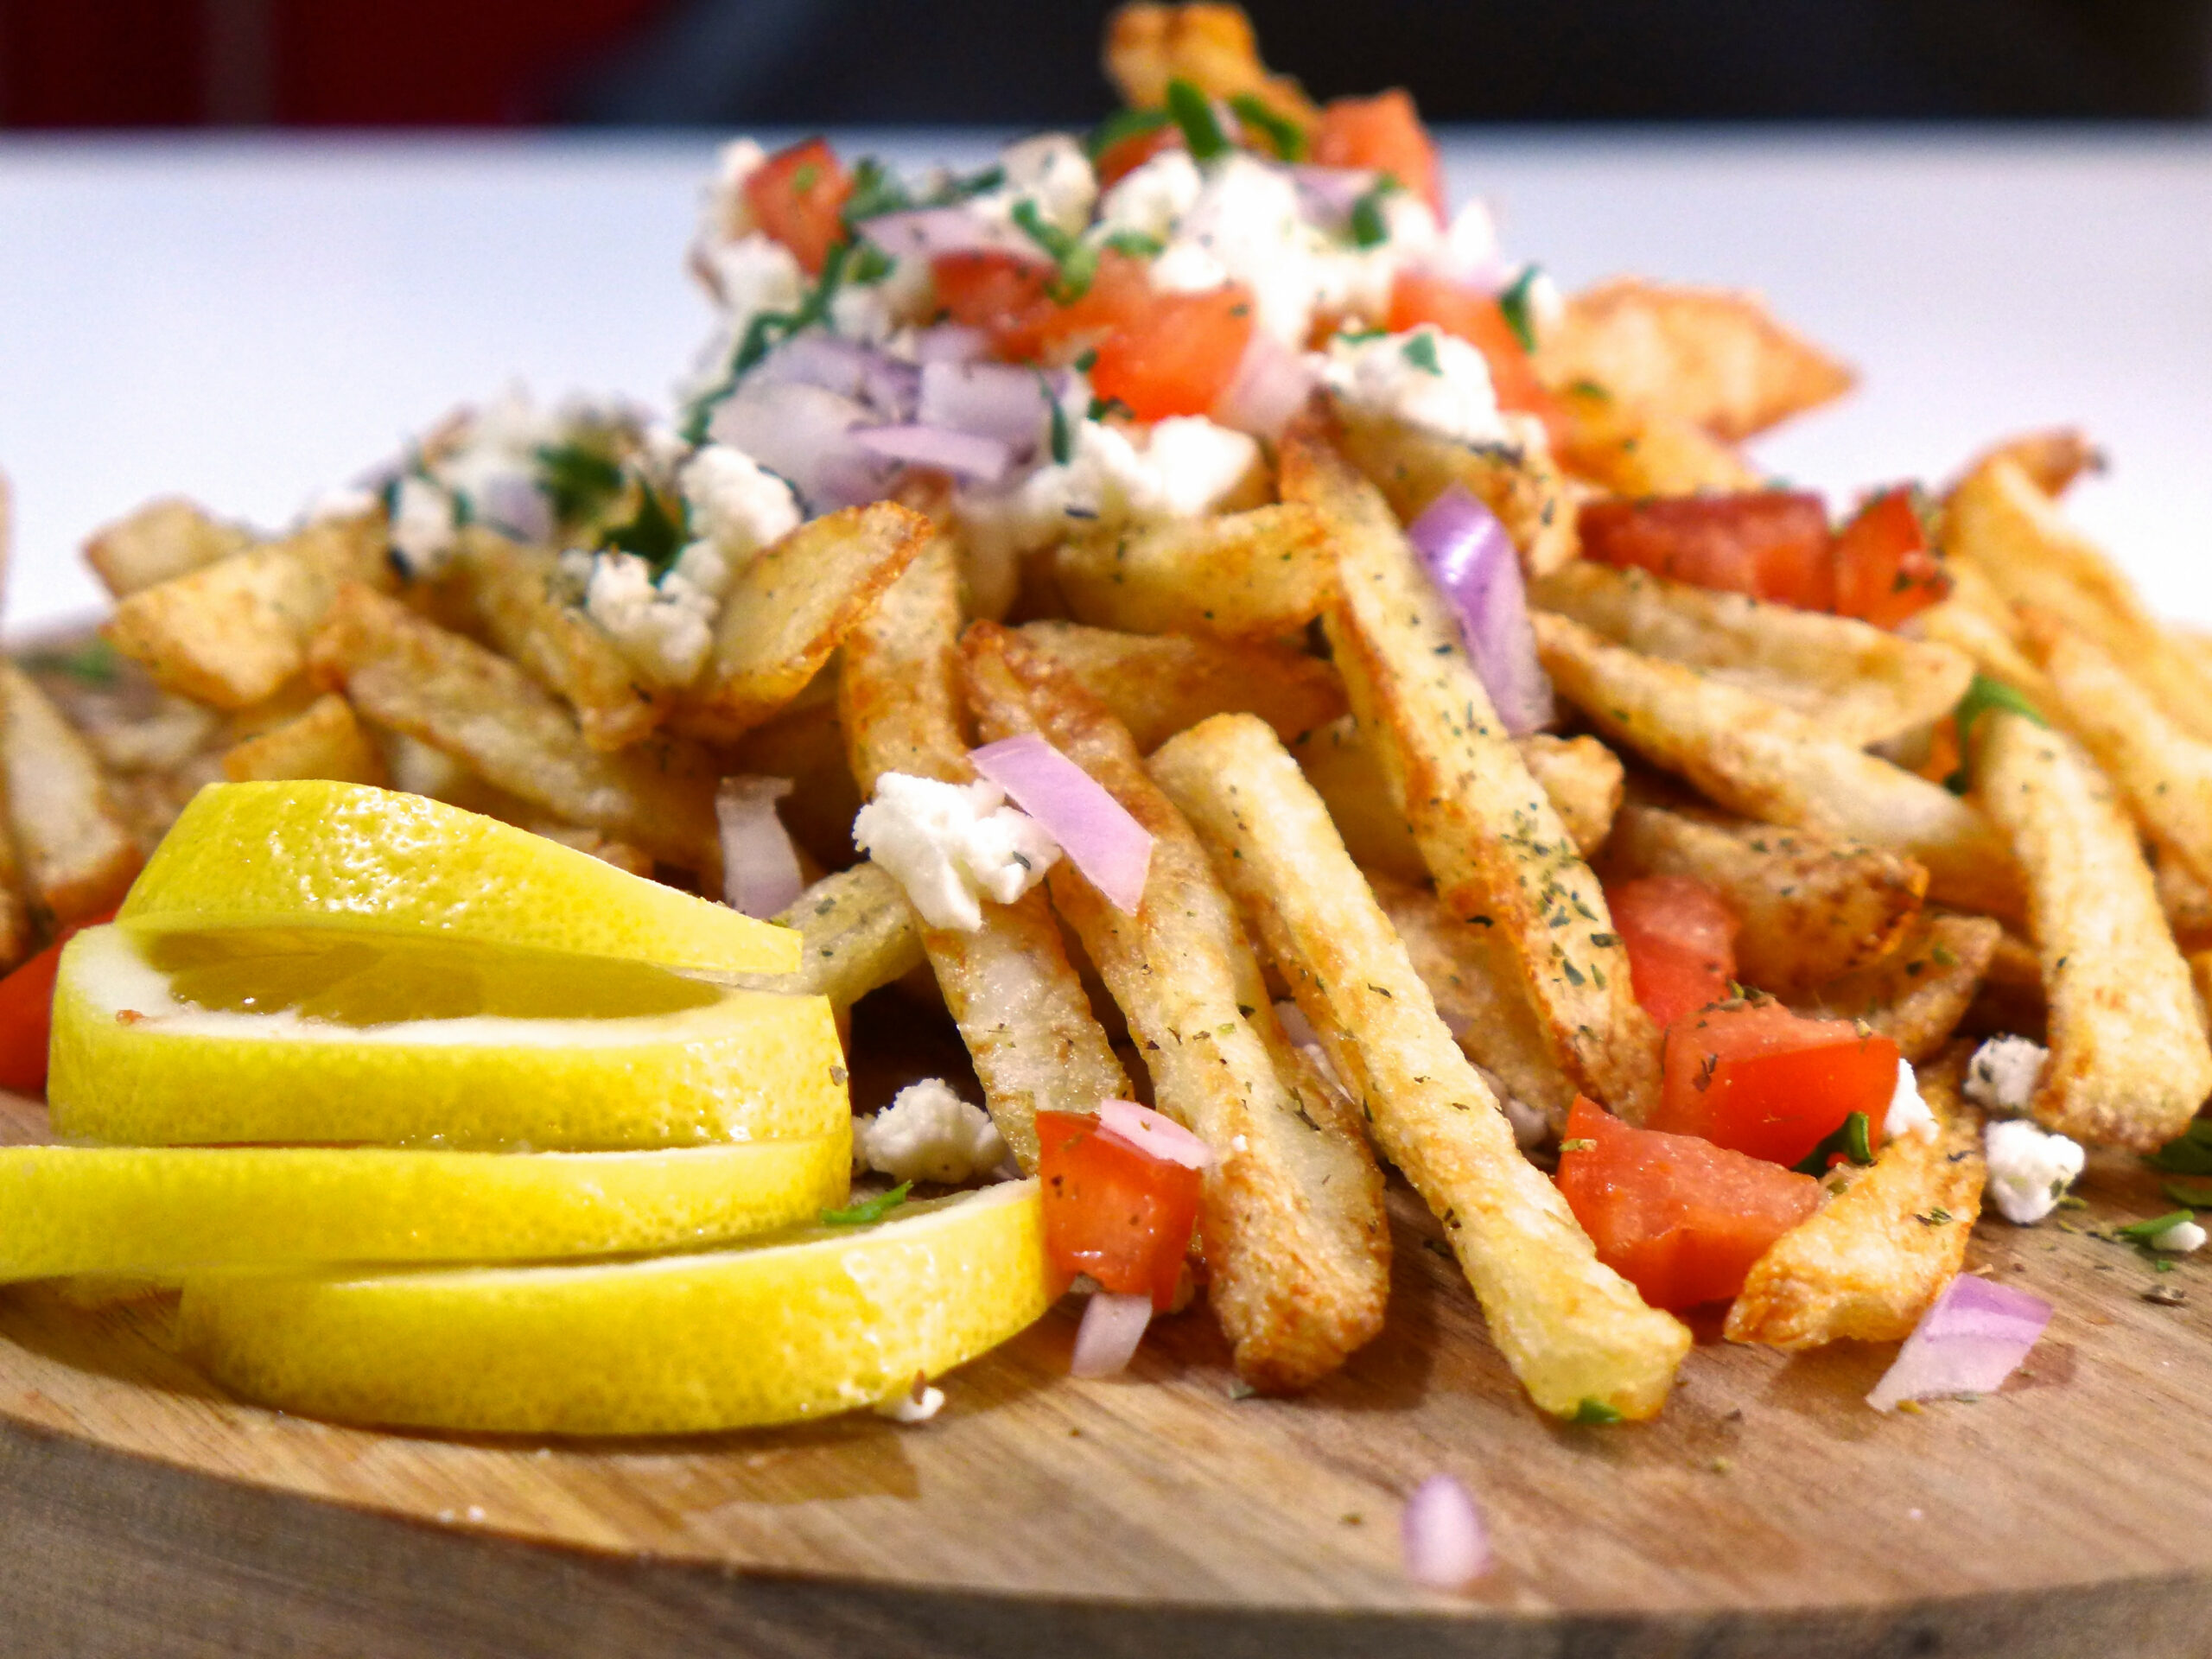 Homemade Baked Greek Fries recipe with feta cheese - My ..